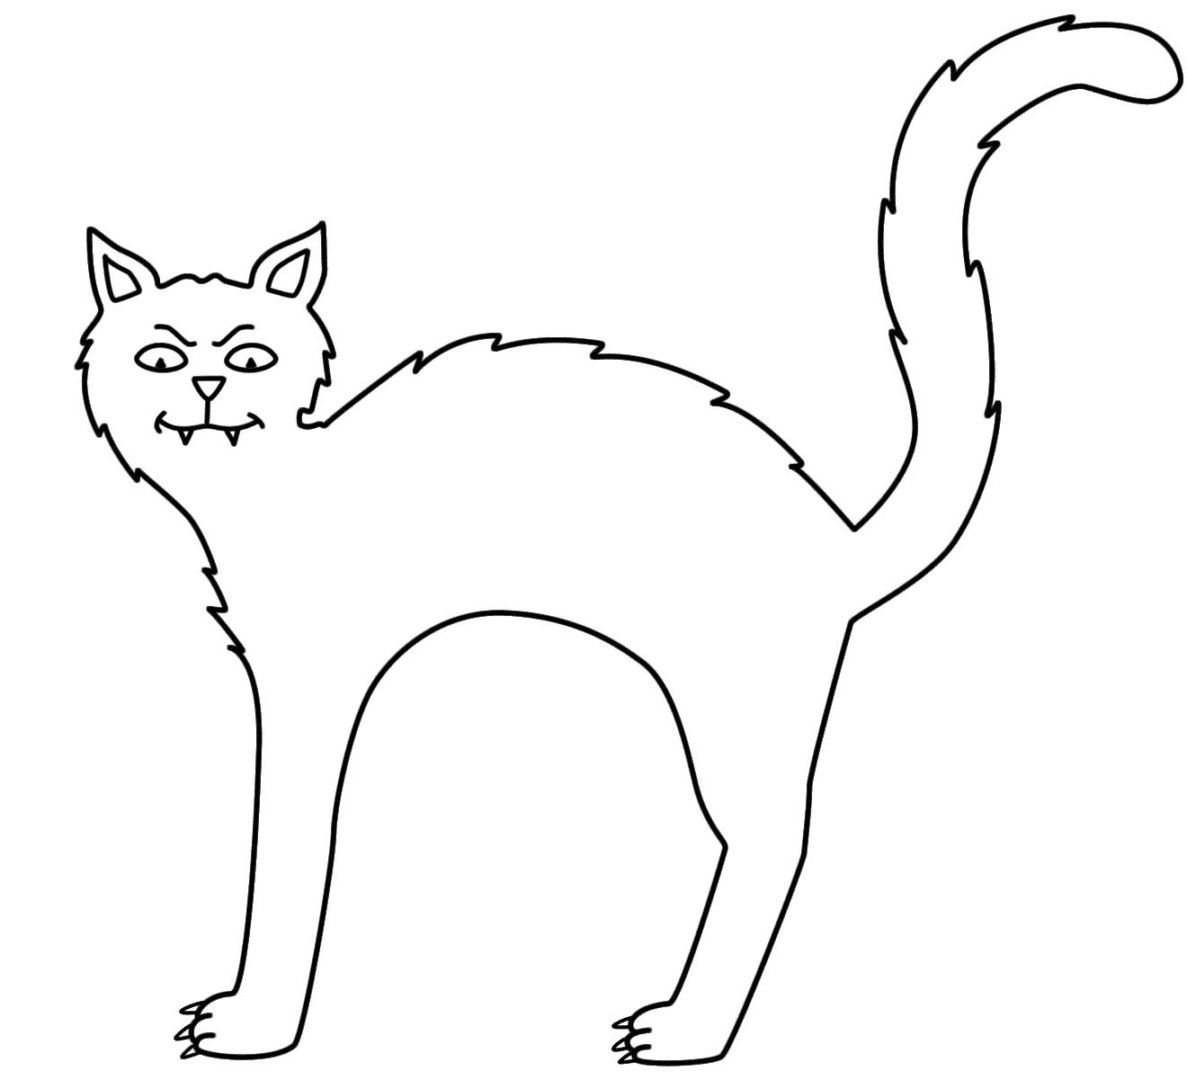 Halloween Cat Coloring Pages  Gallery 16h - To print for your project